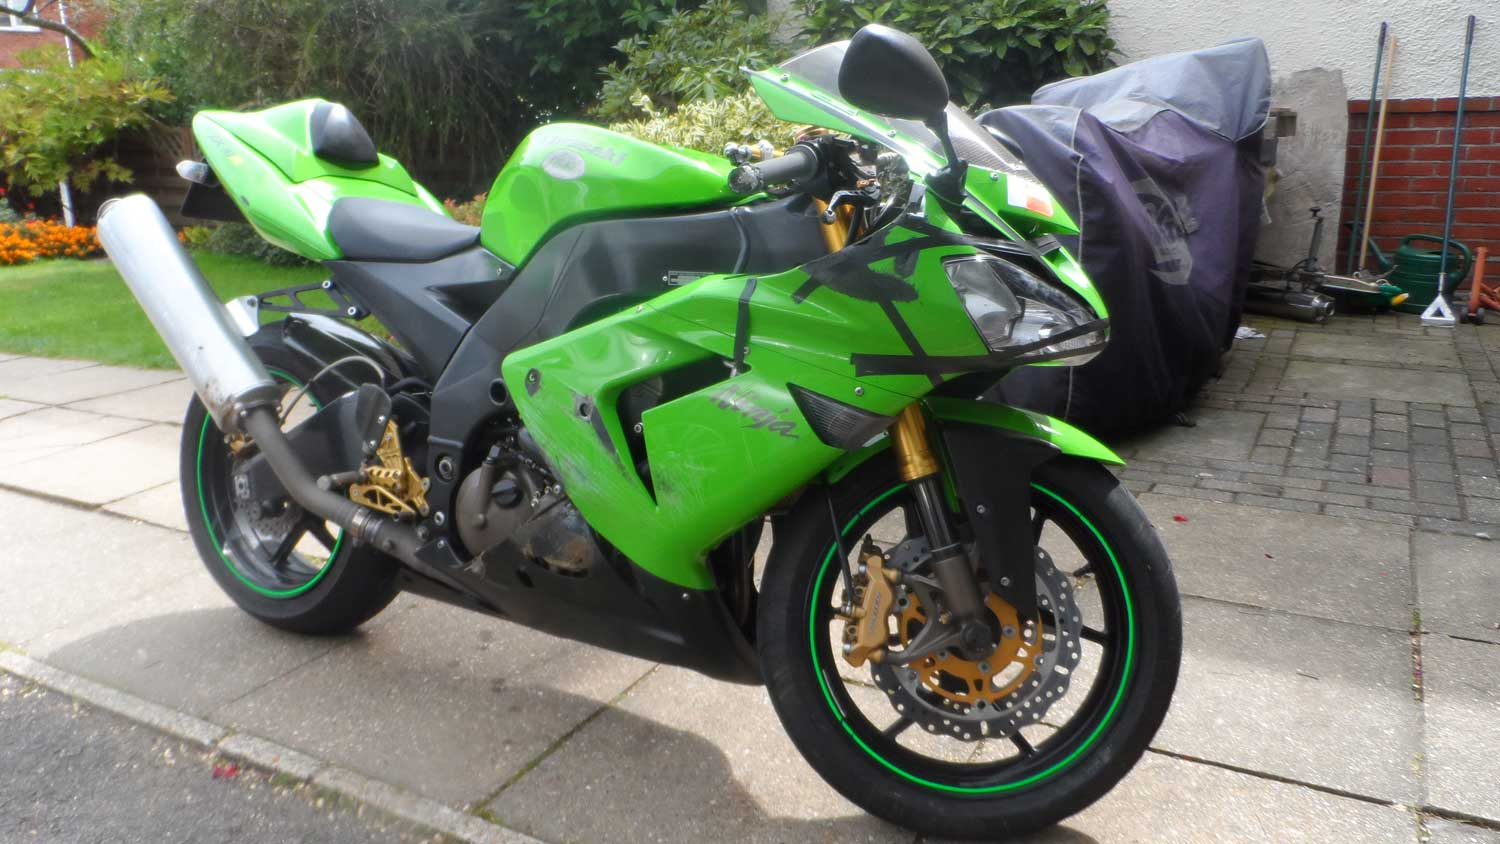 R&G crash protection zx10r 001